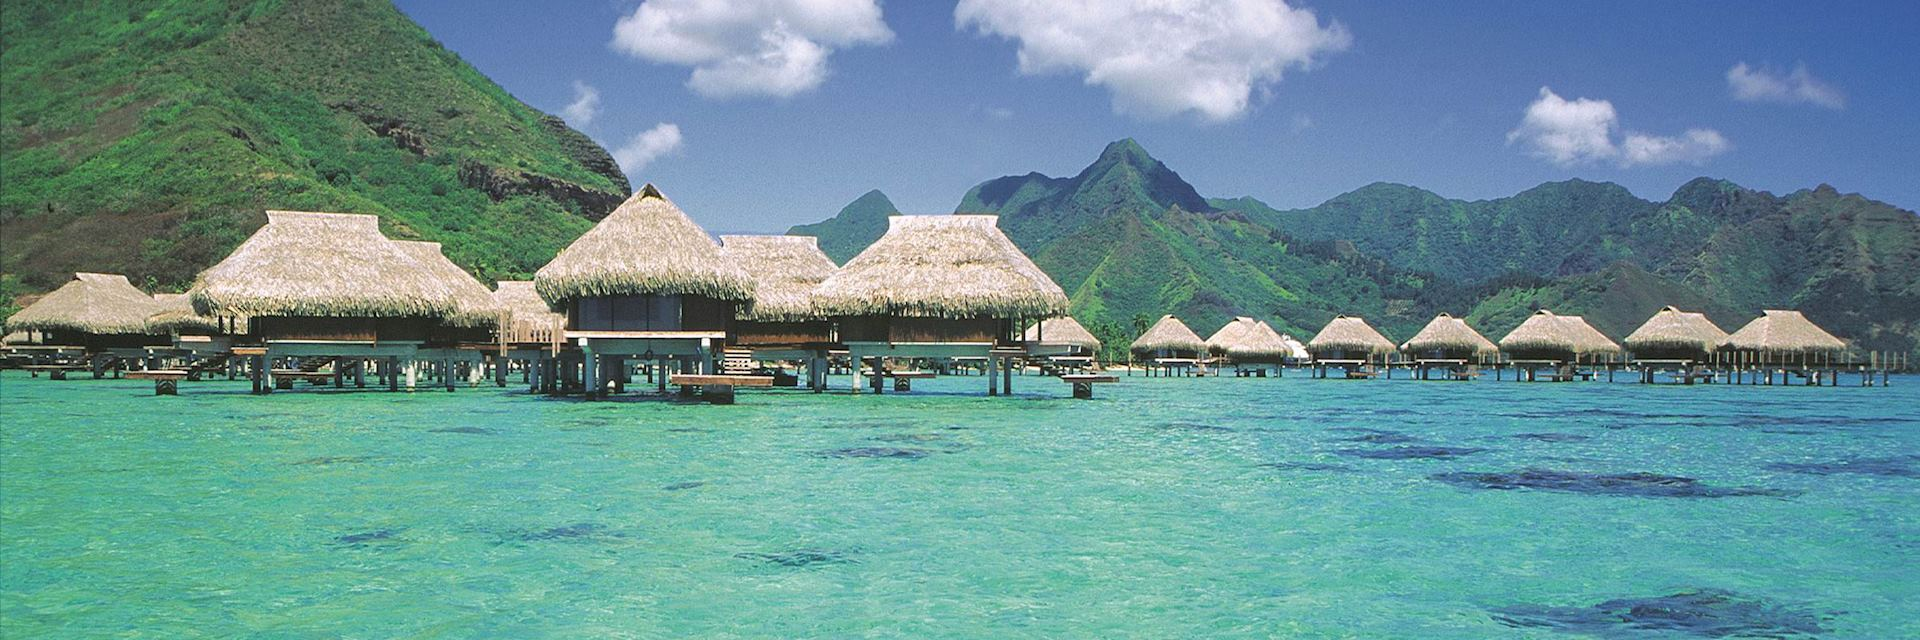 Hilton Moorea Lagoon Resort and Spa, Moorea